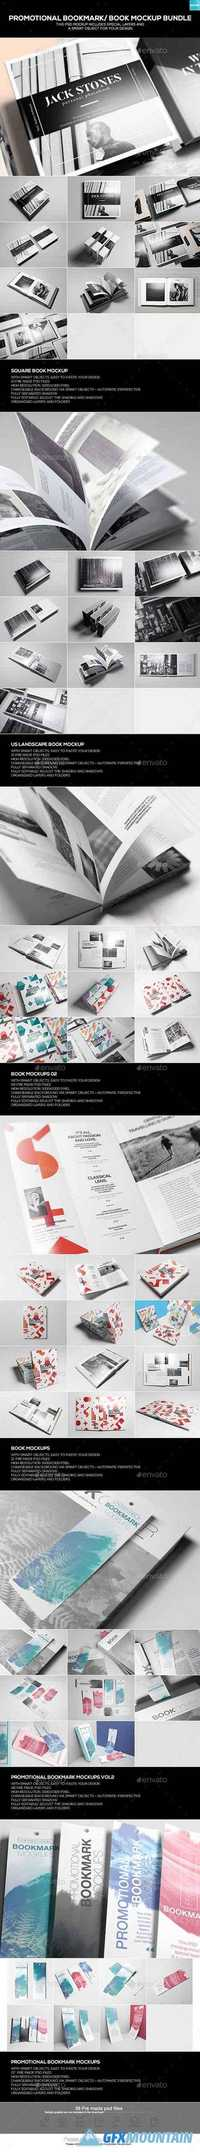 Promotional Bookmark/ Book Mockup Bundle 19866657